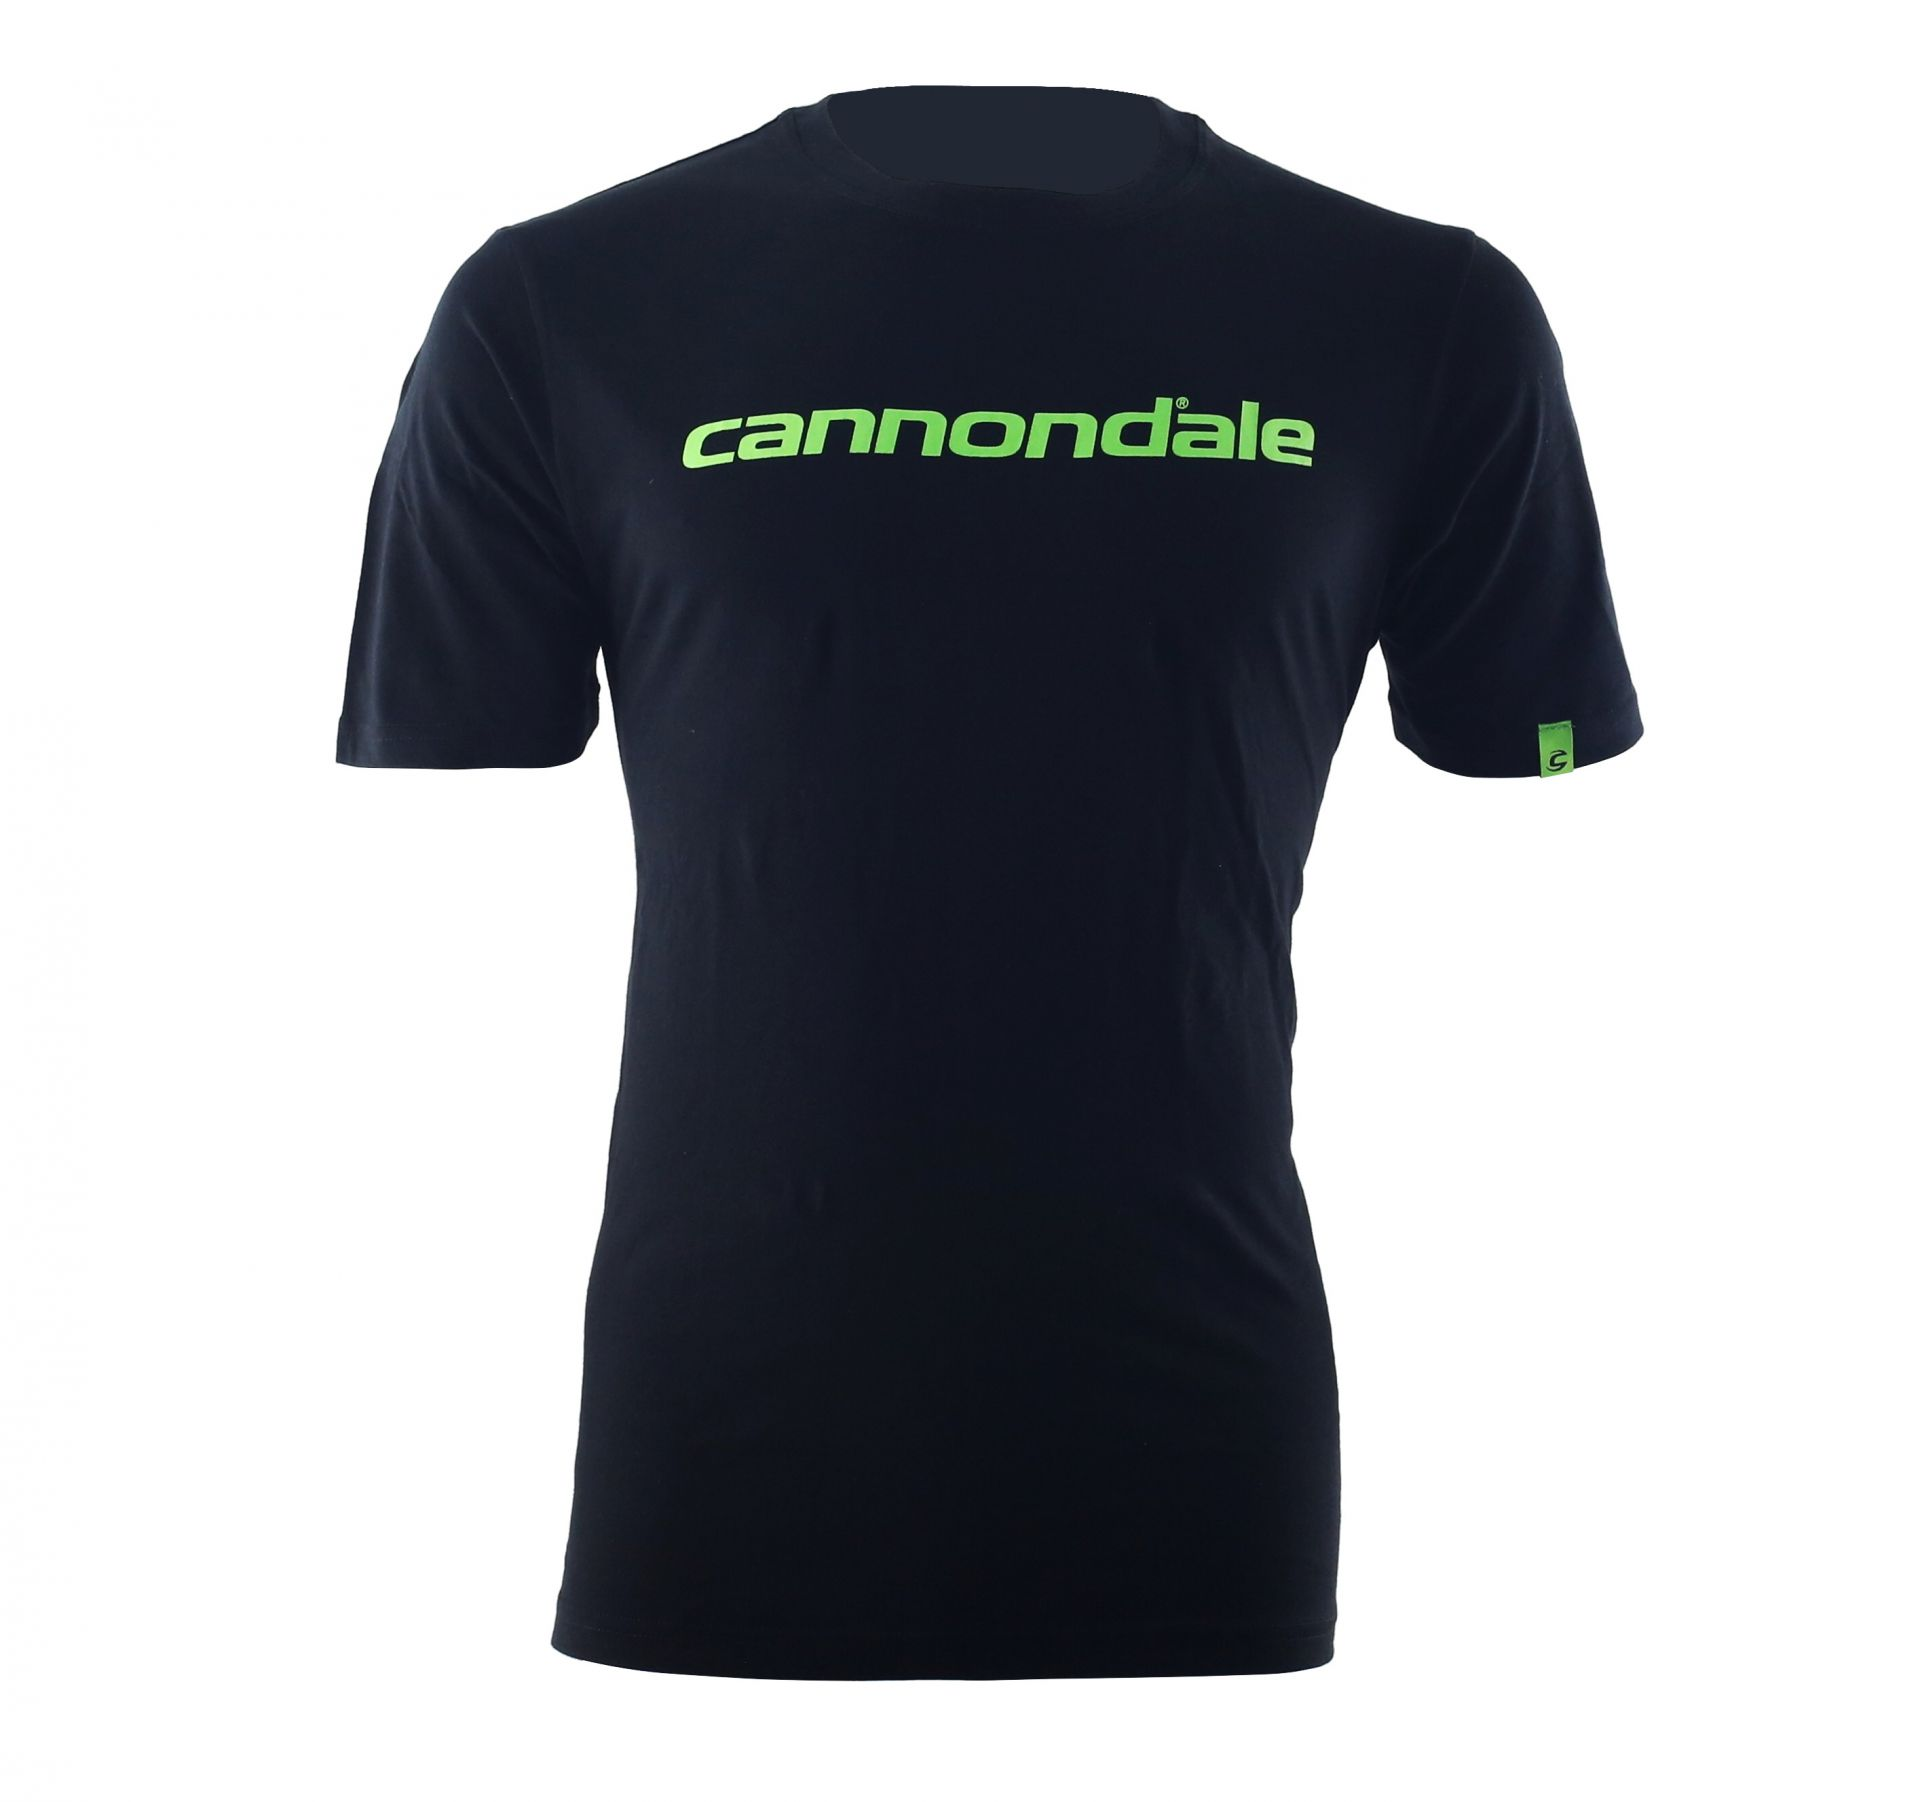 T-Shirt Cannondale Casual Noir - M